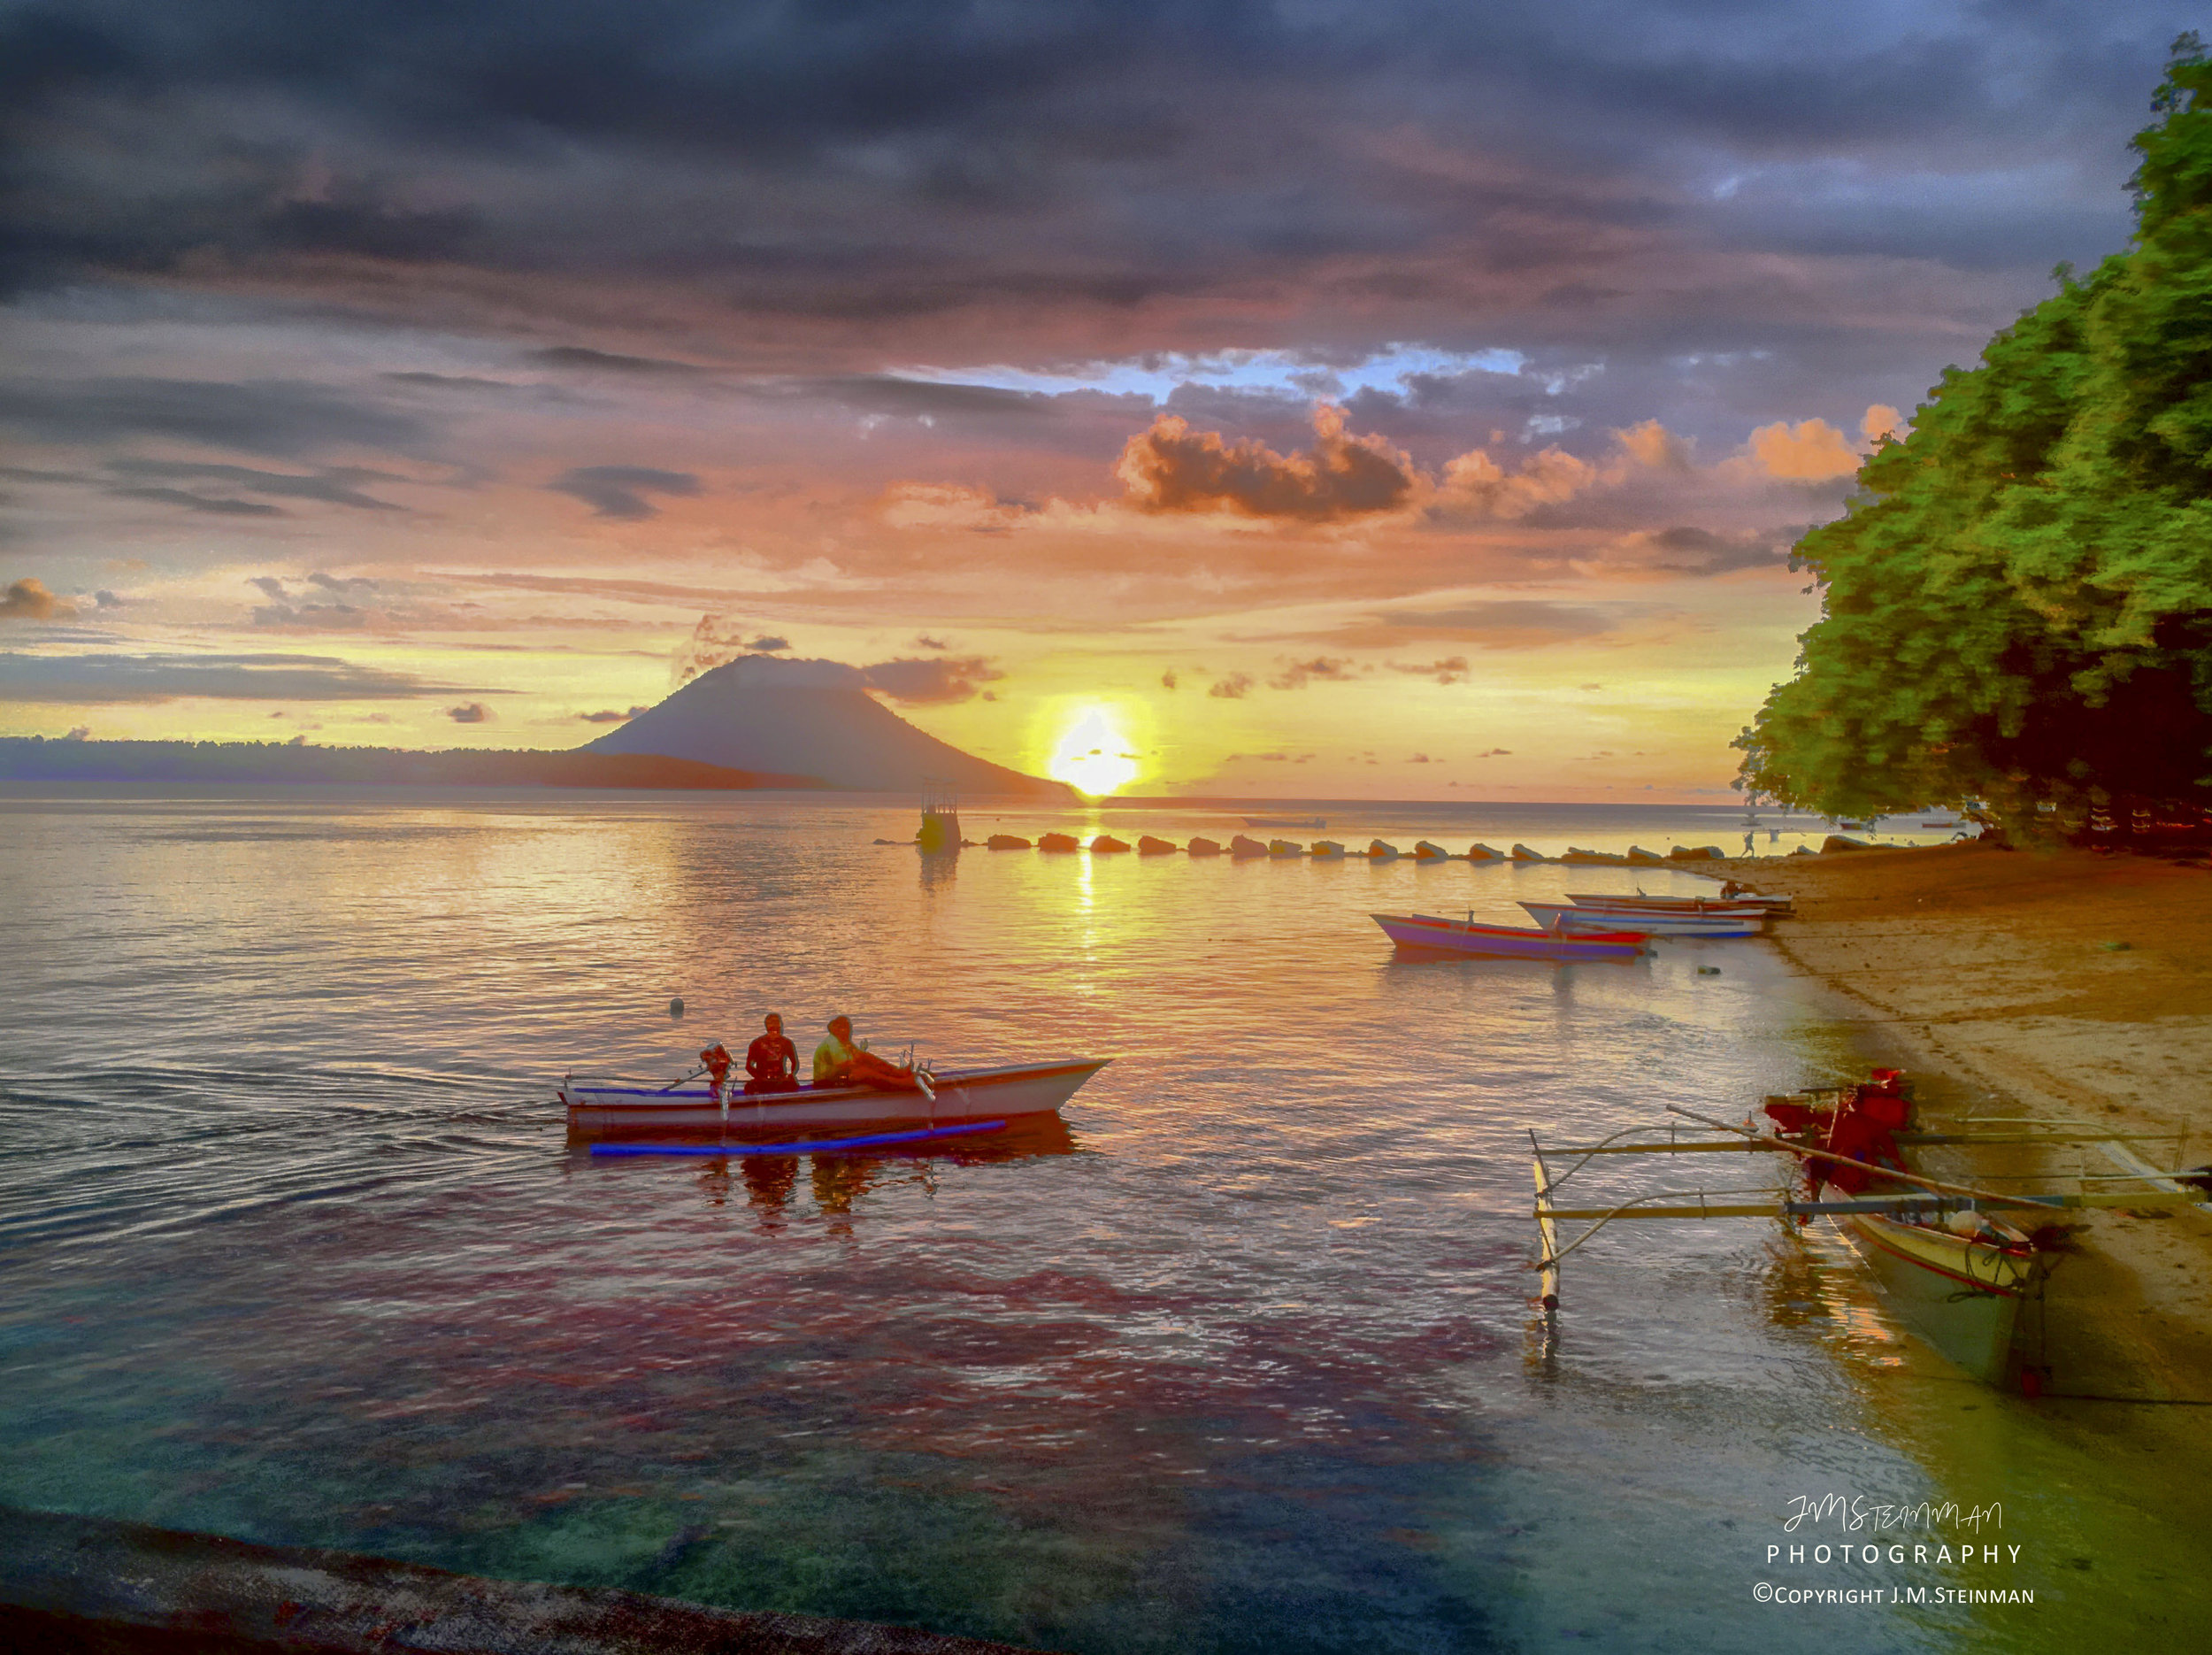 Sunset on Siladen Island, Sulawesi Indonesia